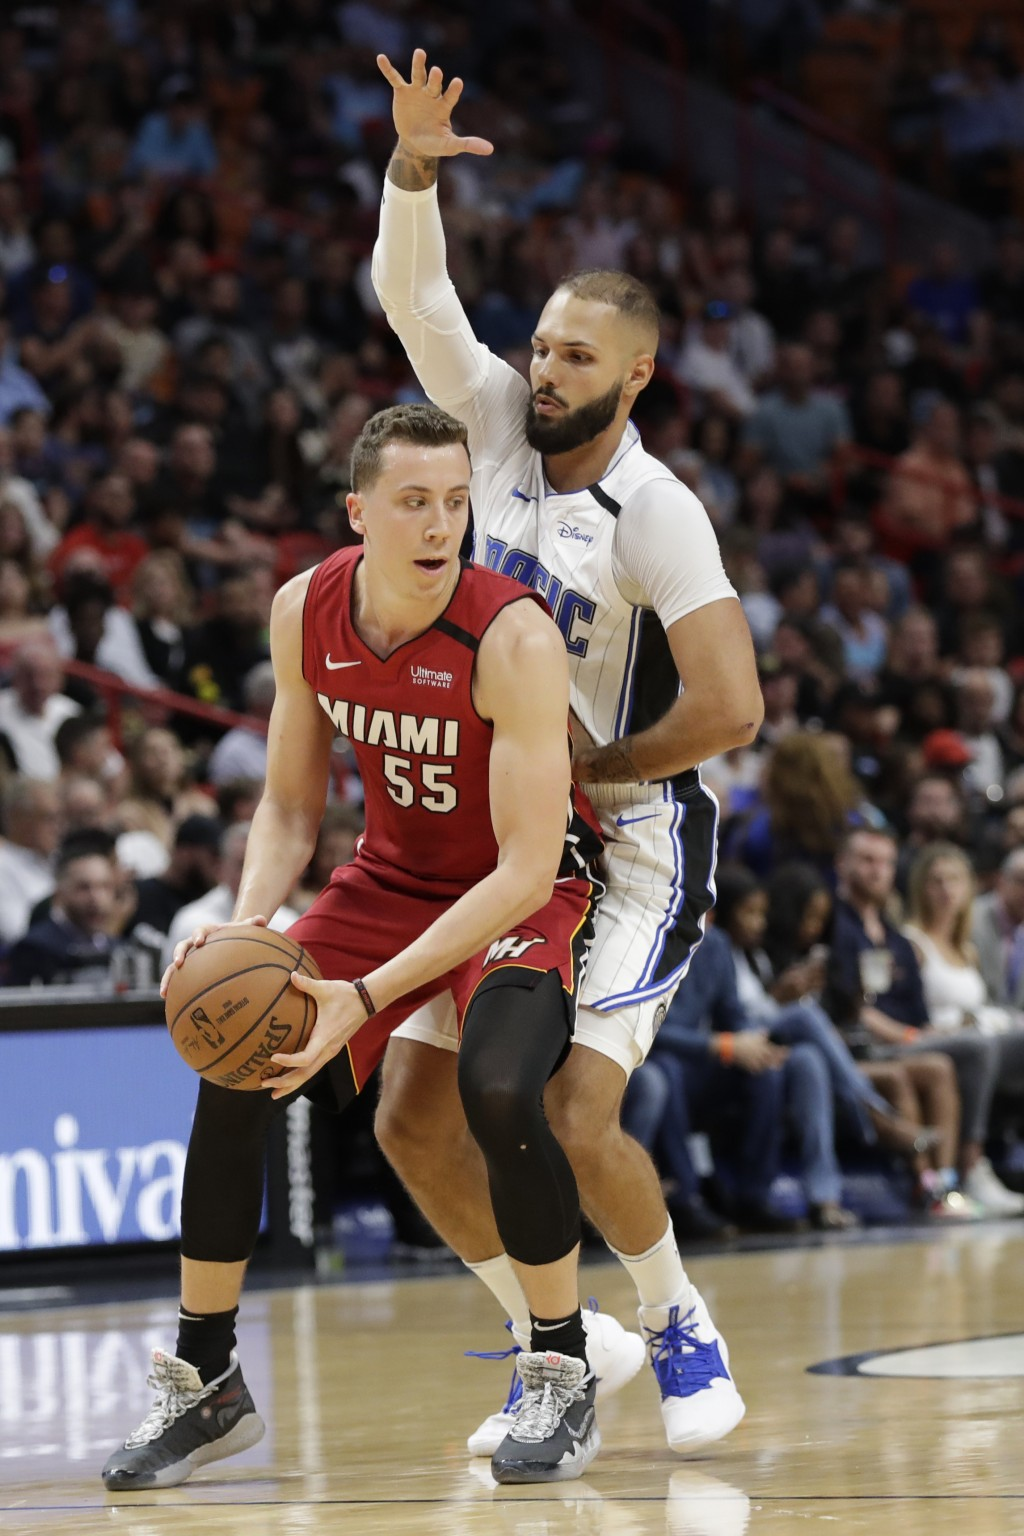 Miami S Duncan Robinson On A Record Path From 3 Point Land Taiwan News